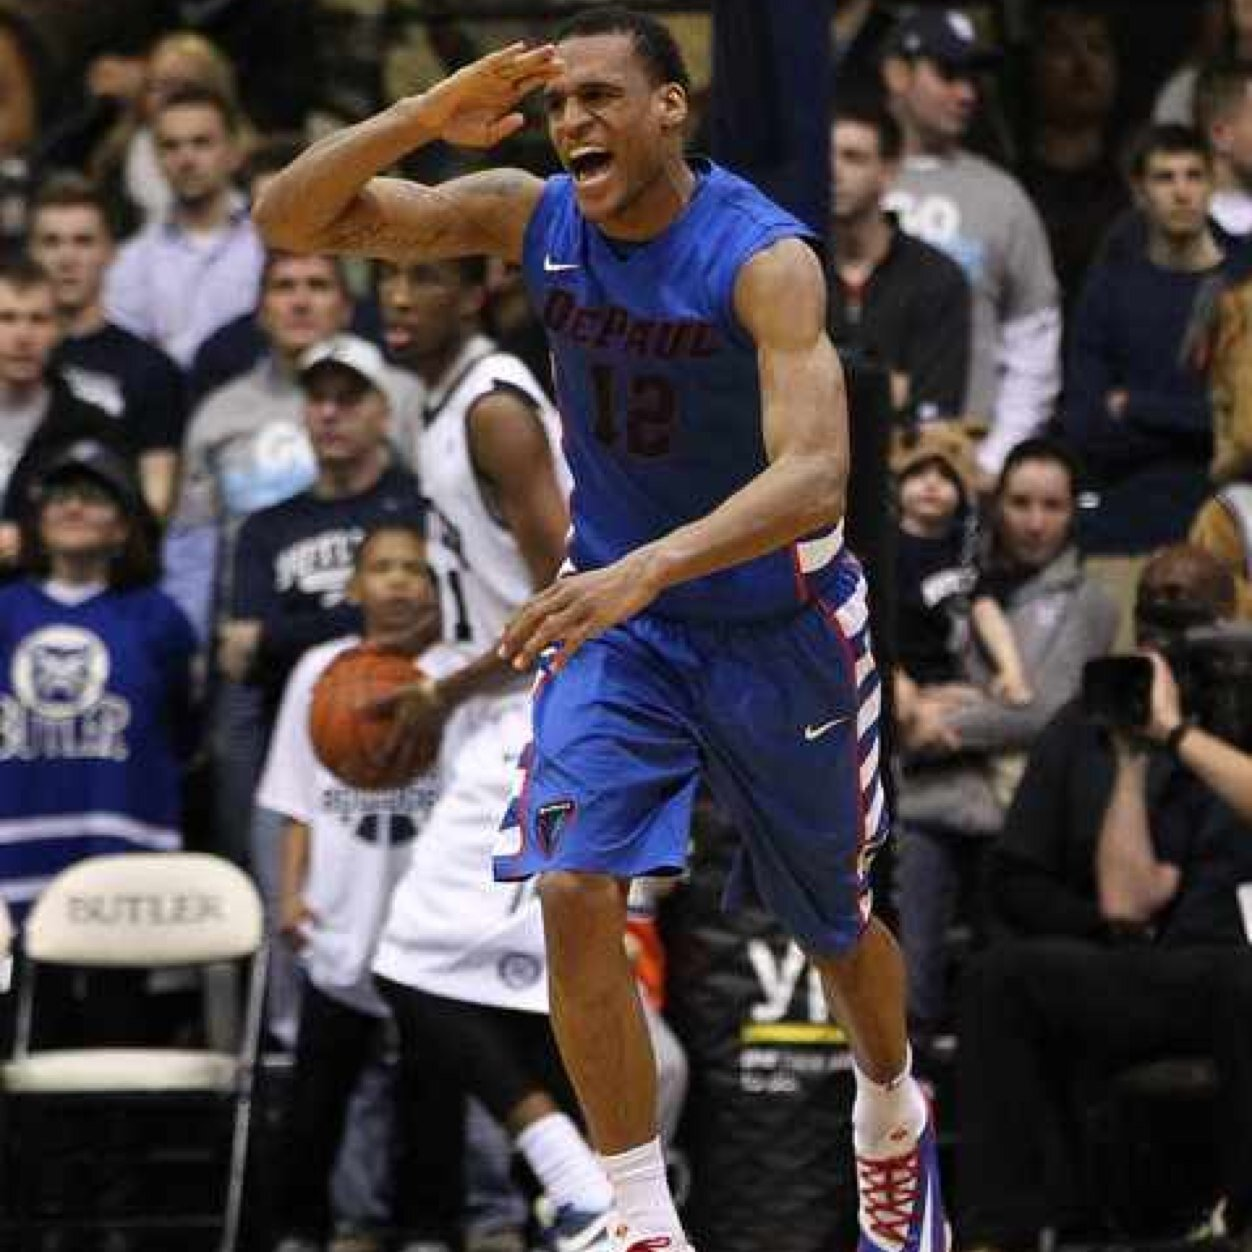 Cleveland Melvin is no longer a student at DePaul University (photo courtesy of  the Chicago Tribune)